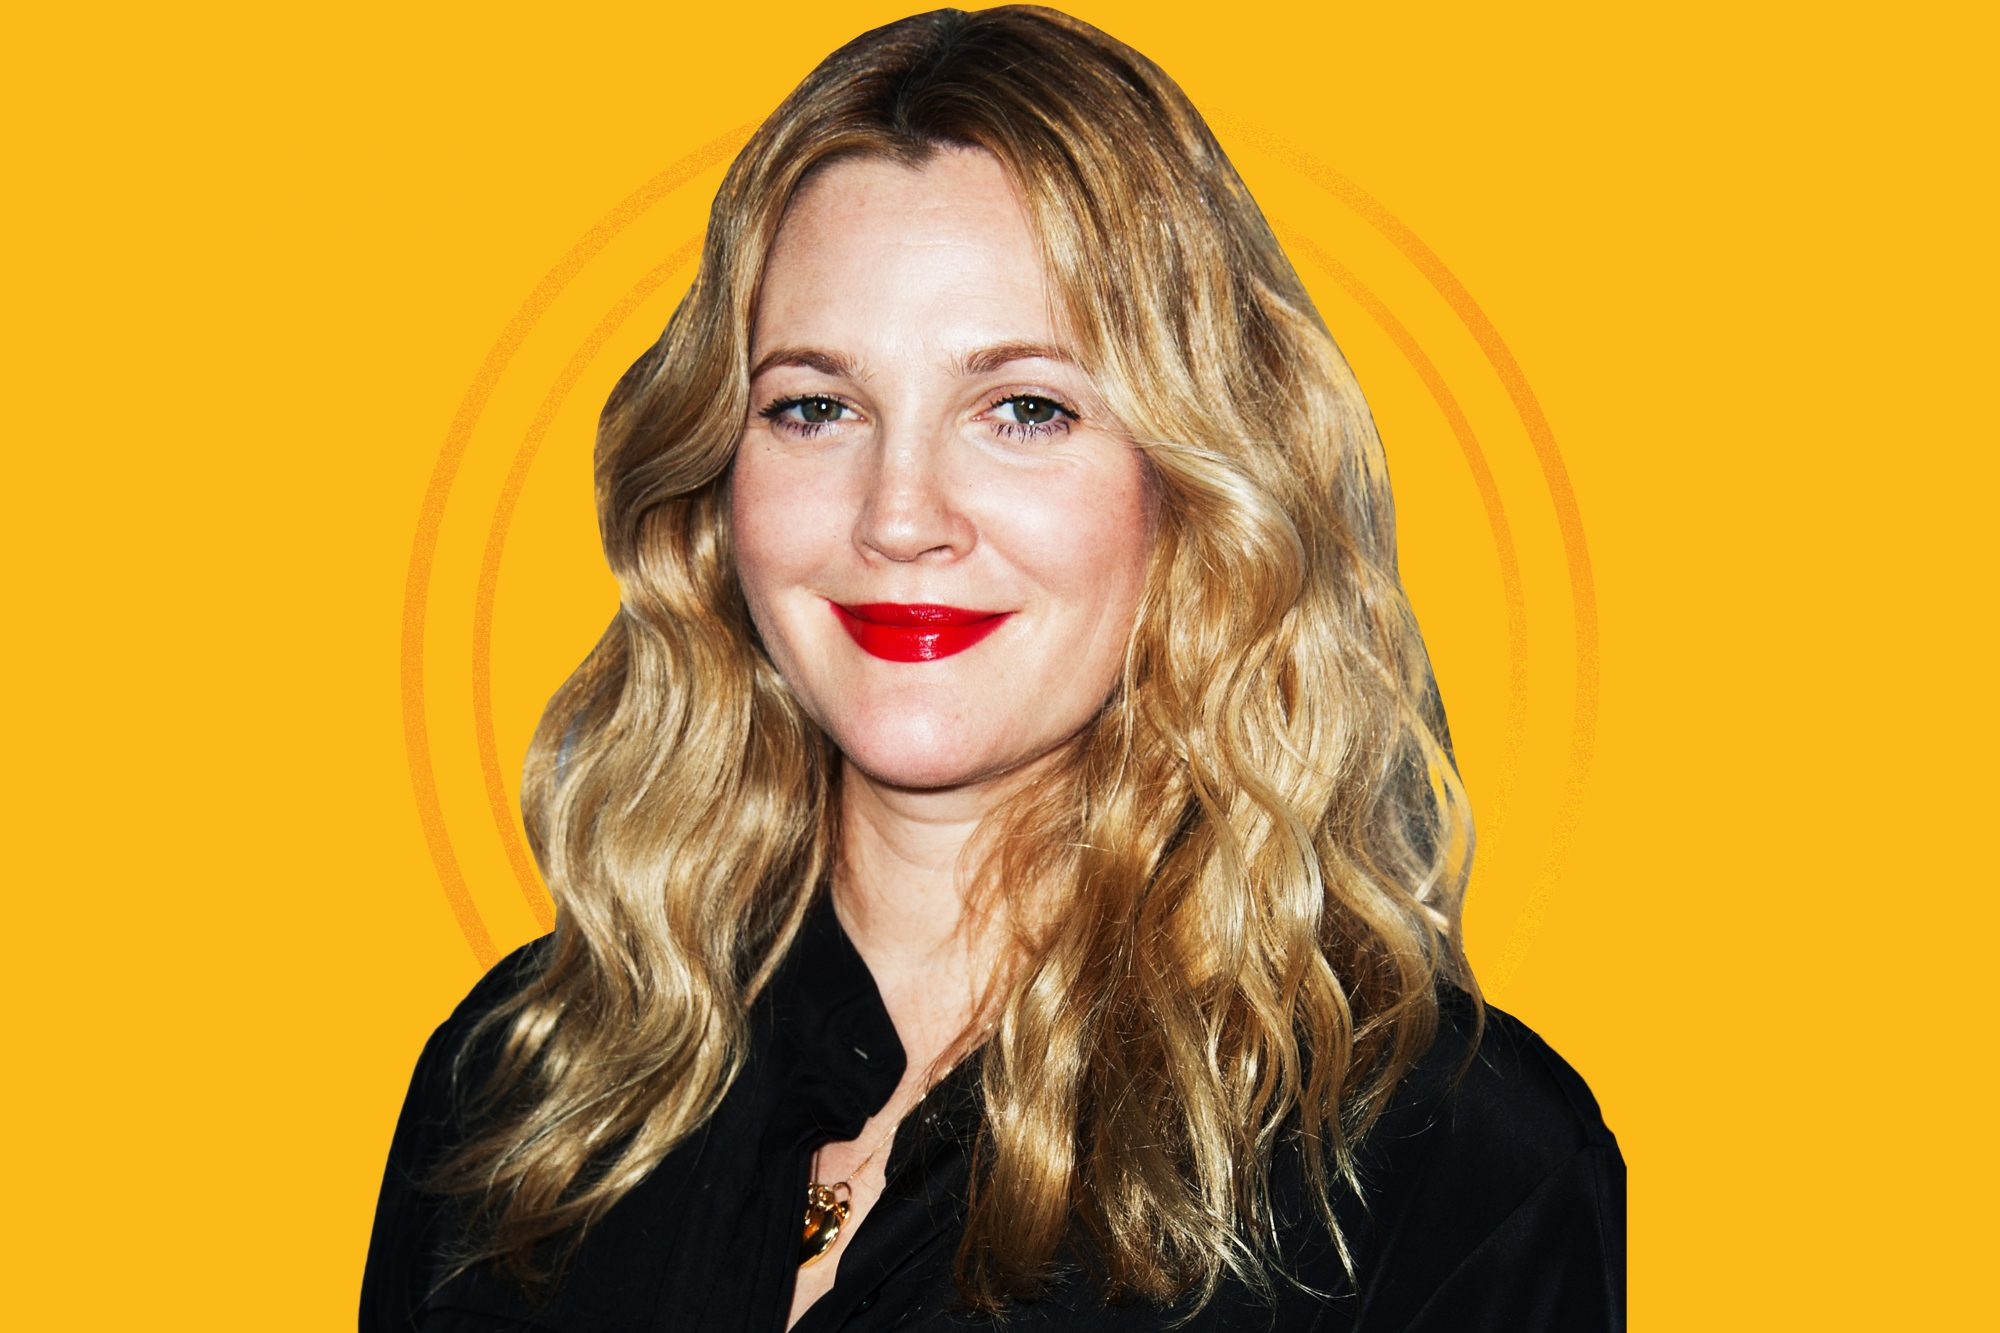 Drew-Barrymore-And-Her-Dematologist-Swear-By-This-Product-for-Chapped-Lips-GettyImages-460278244